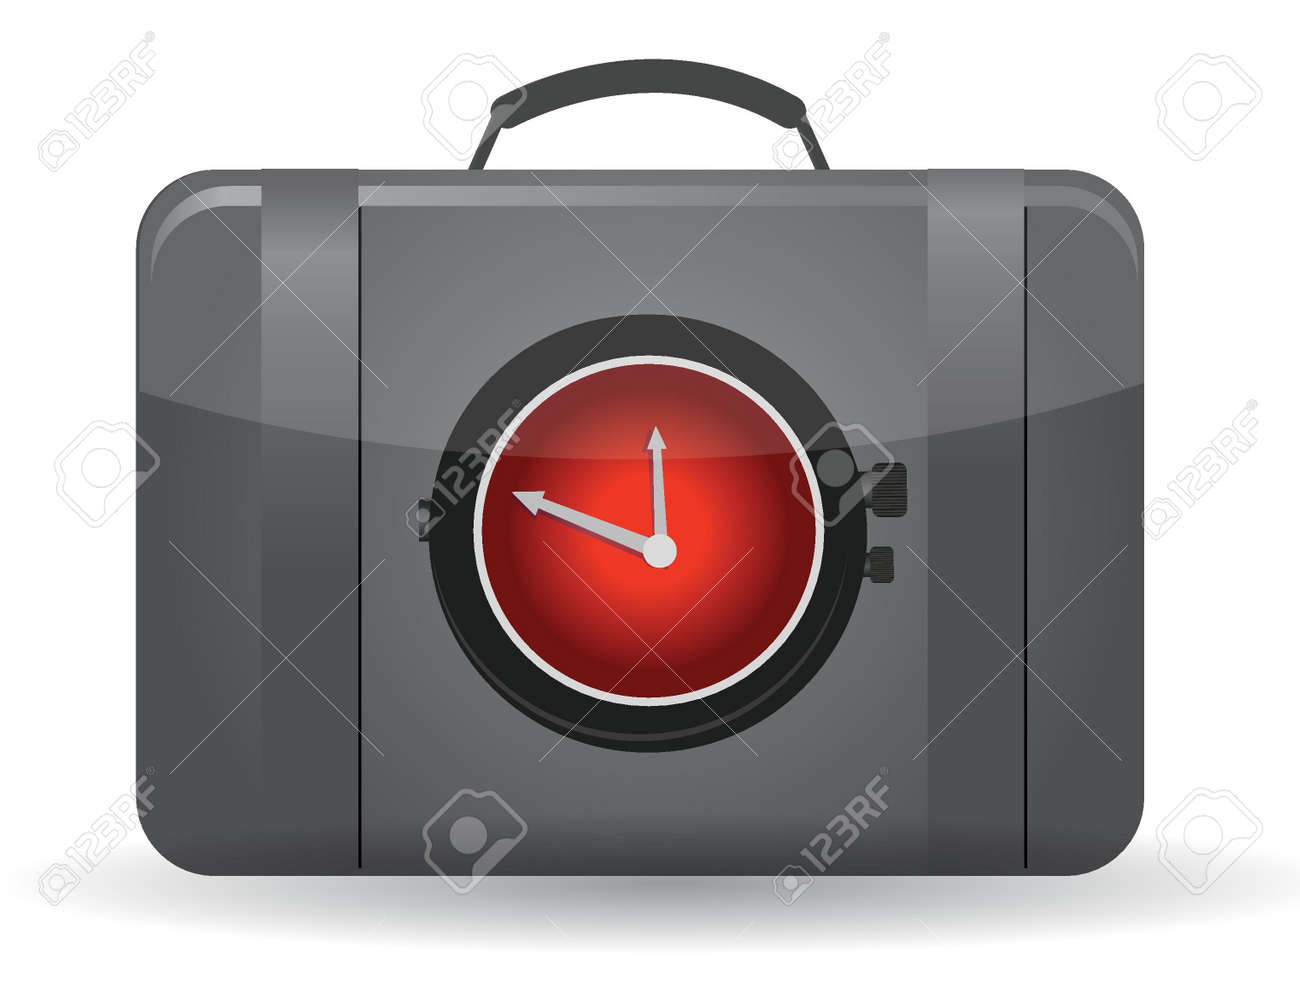 Bag with a watch in the front illustration design Stock Vector - 15925482